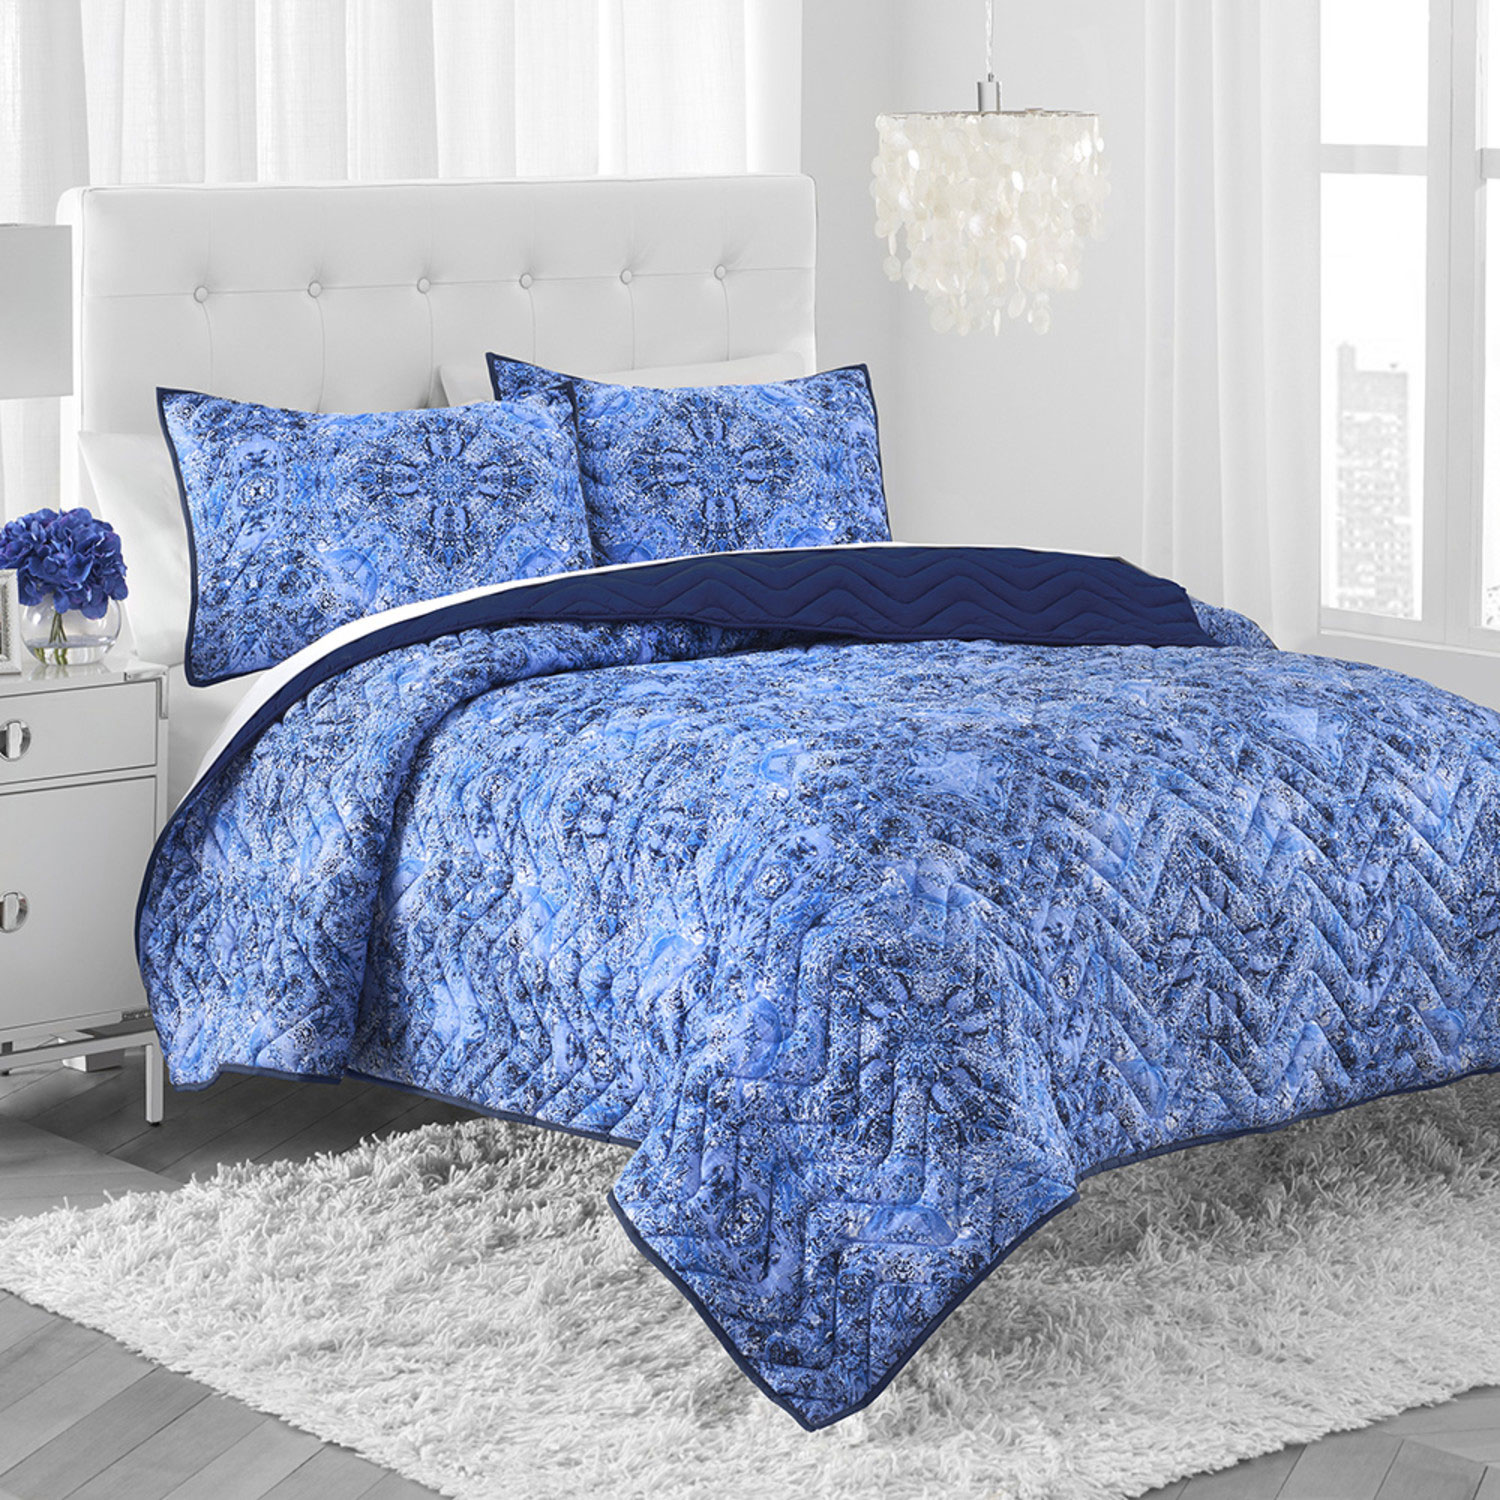 Arcadia Indigo By Amy Sia Home Beddingsuperstore Com